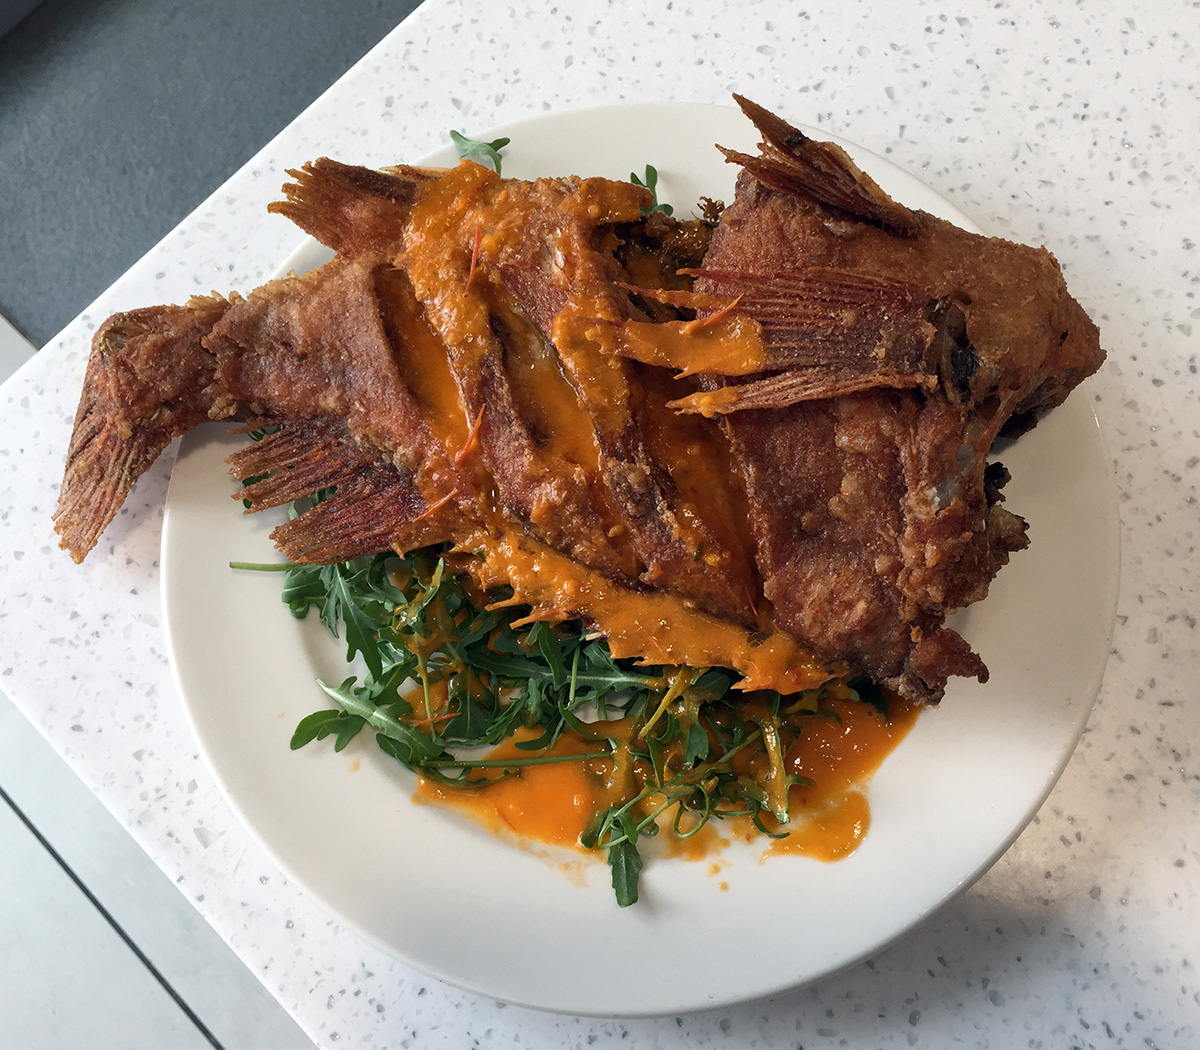 A whole fried fish served at Samsung by our Executive Chef Nicolai Tuban